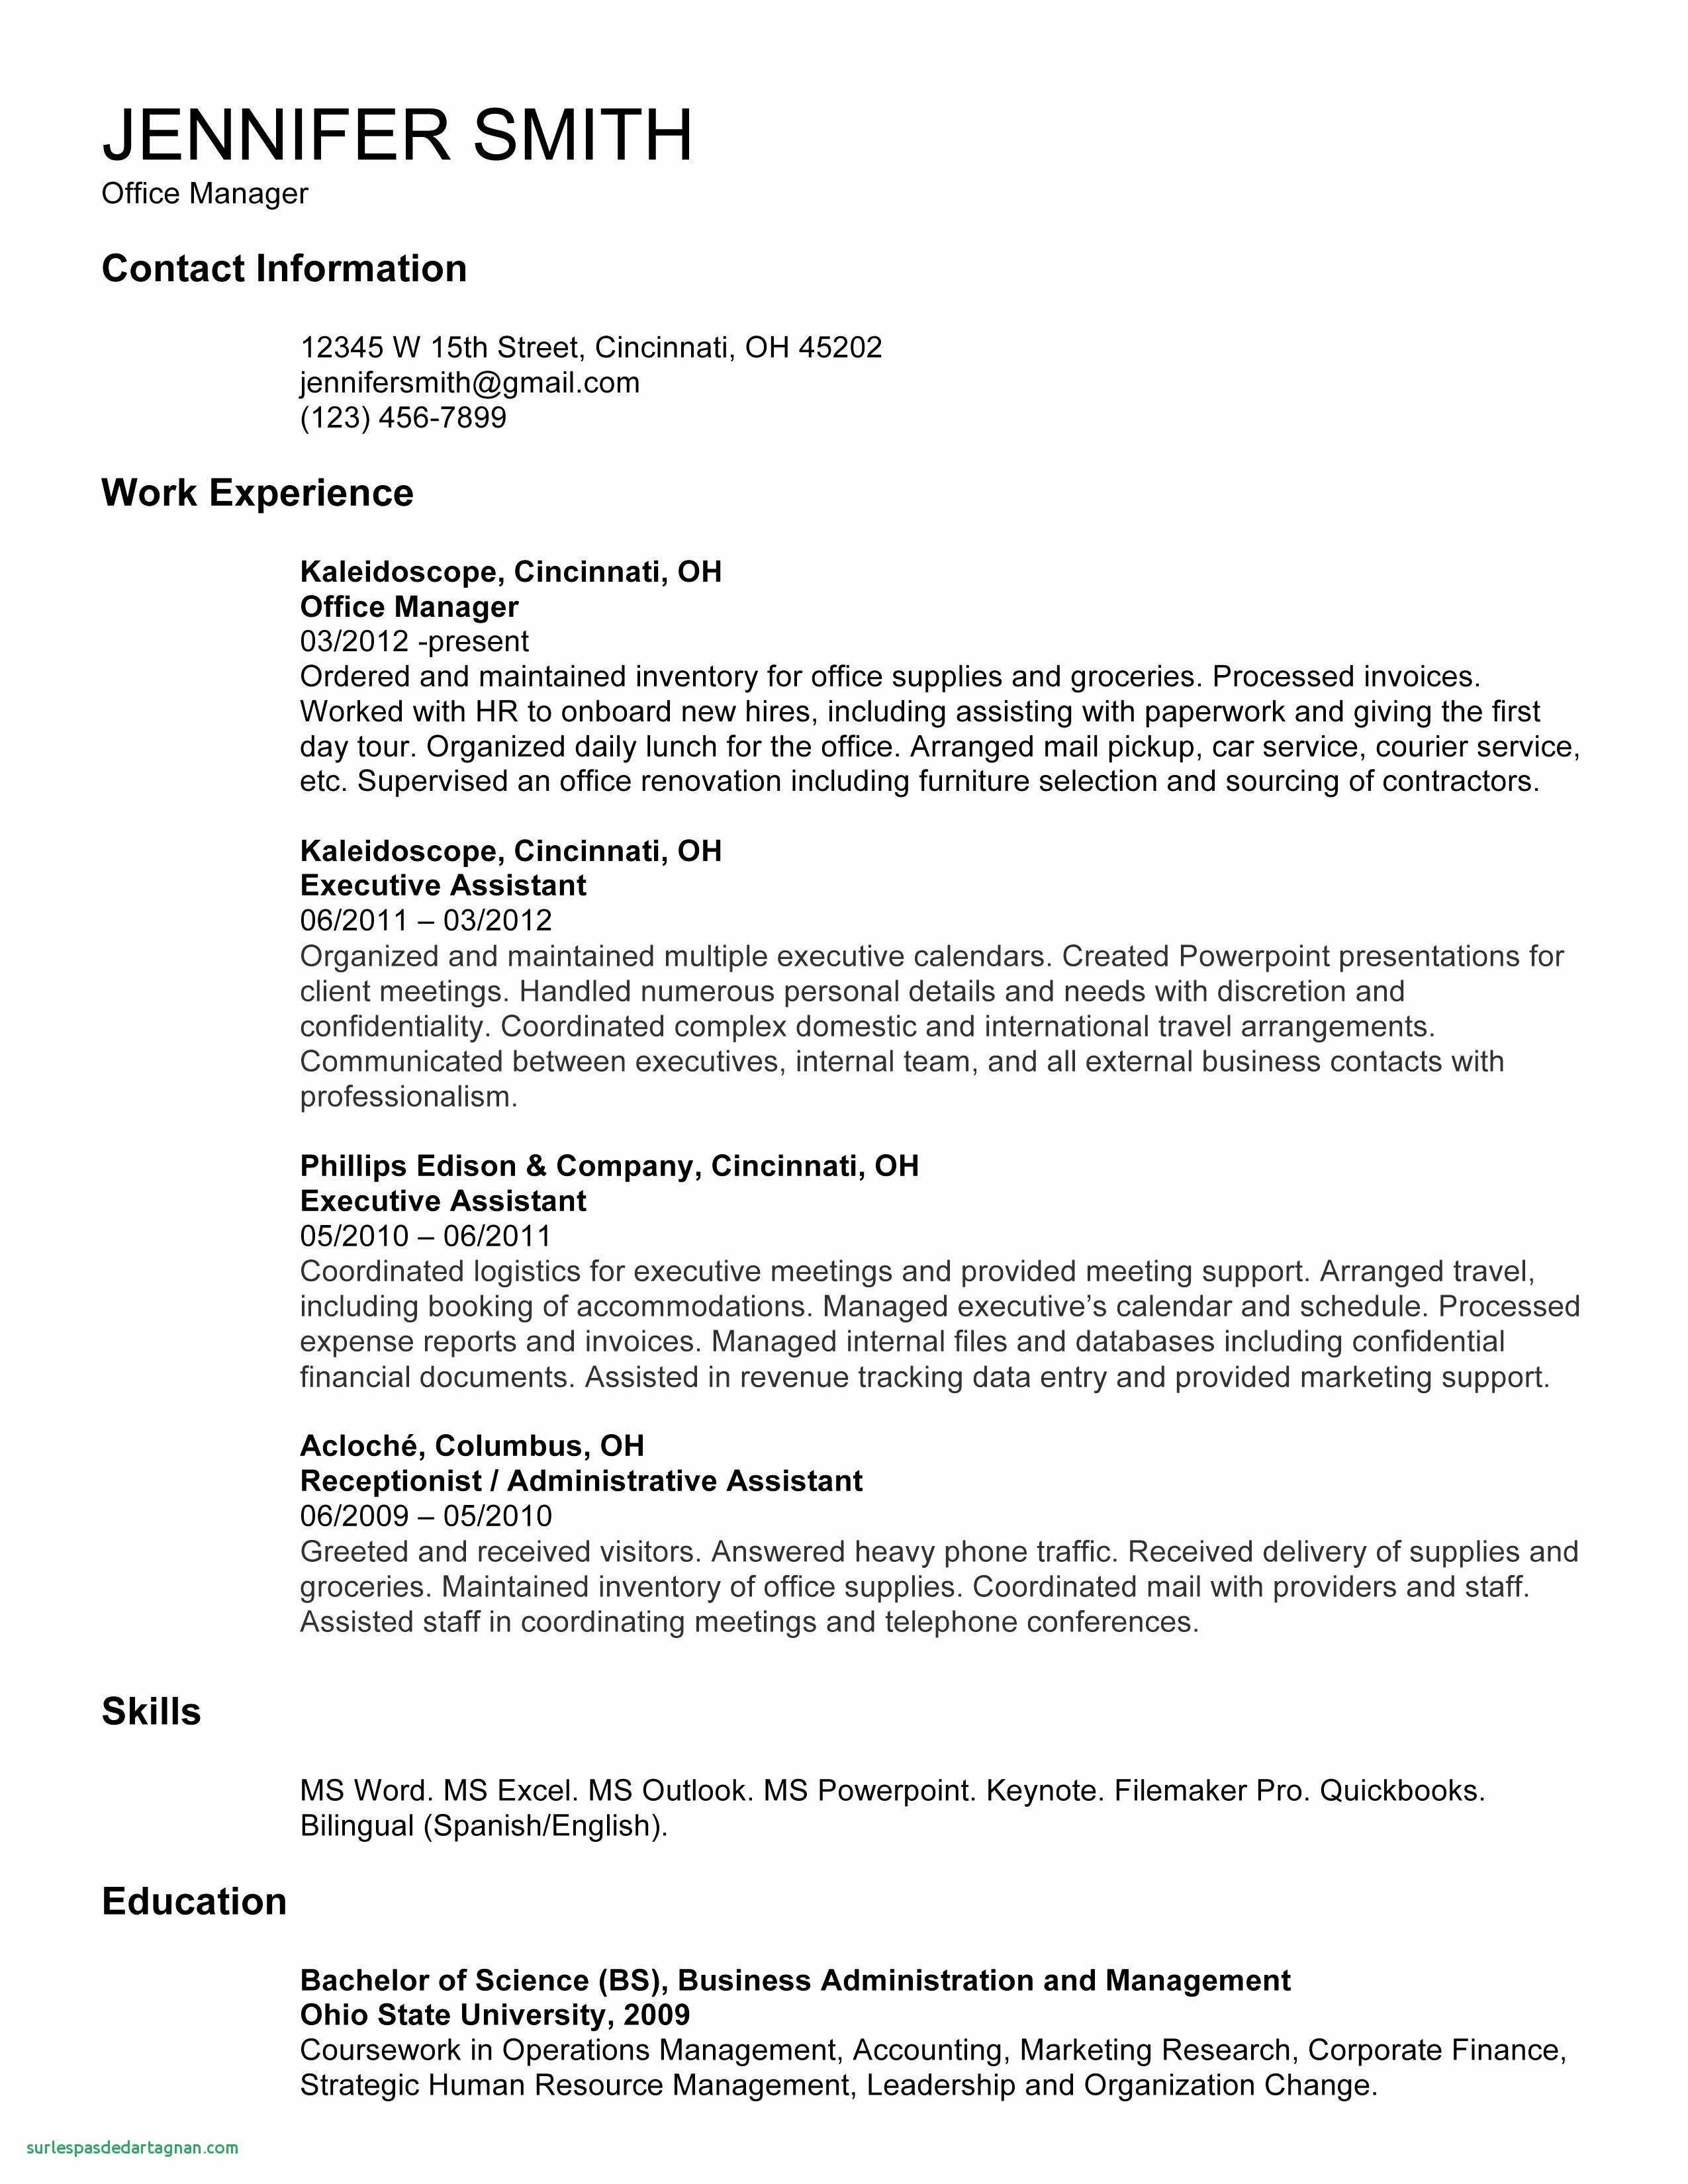 Unique Resume Templates - Resume Template Download Free Unique ¢Ë†Å¡ Resume Template Download